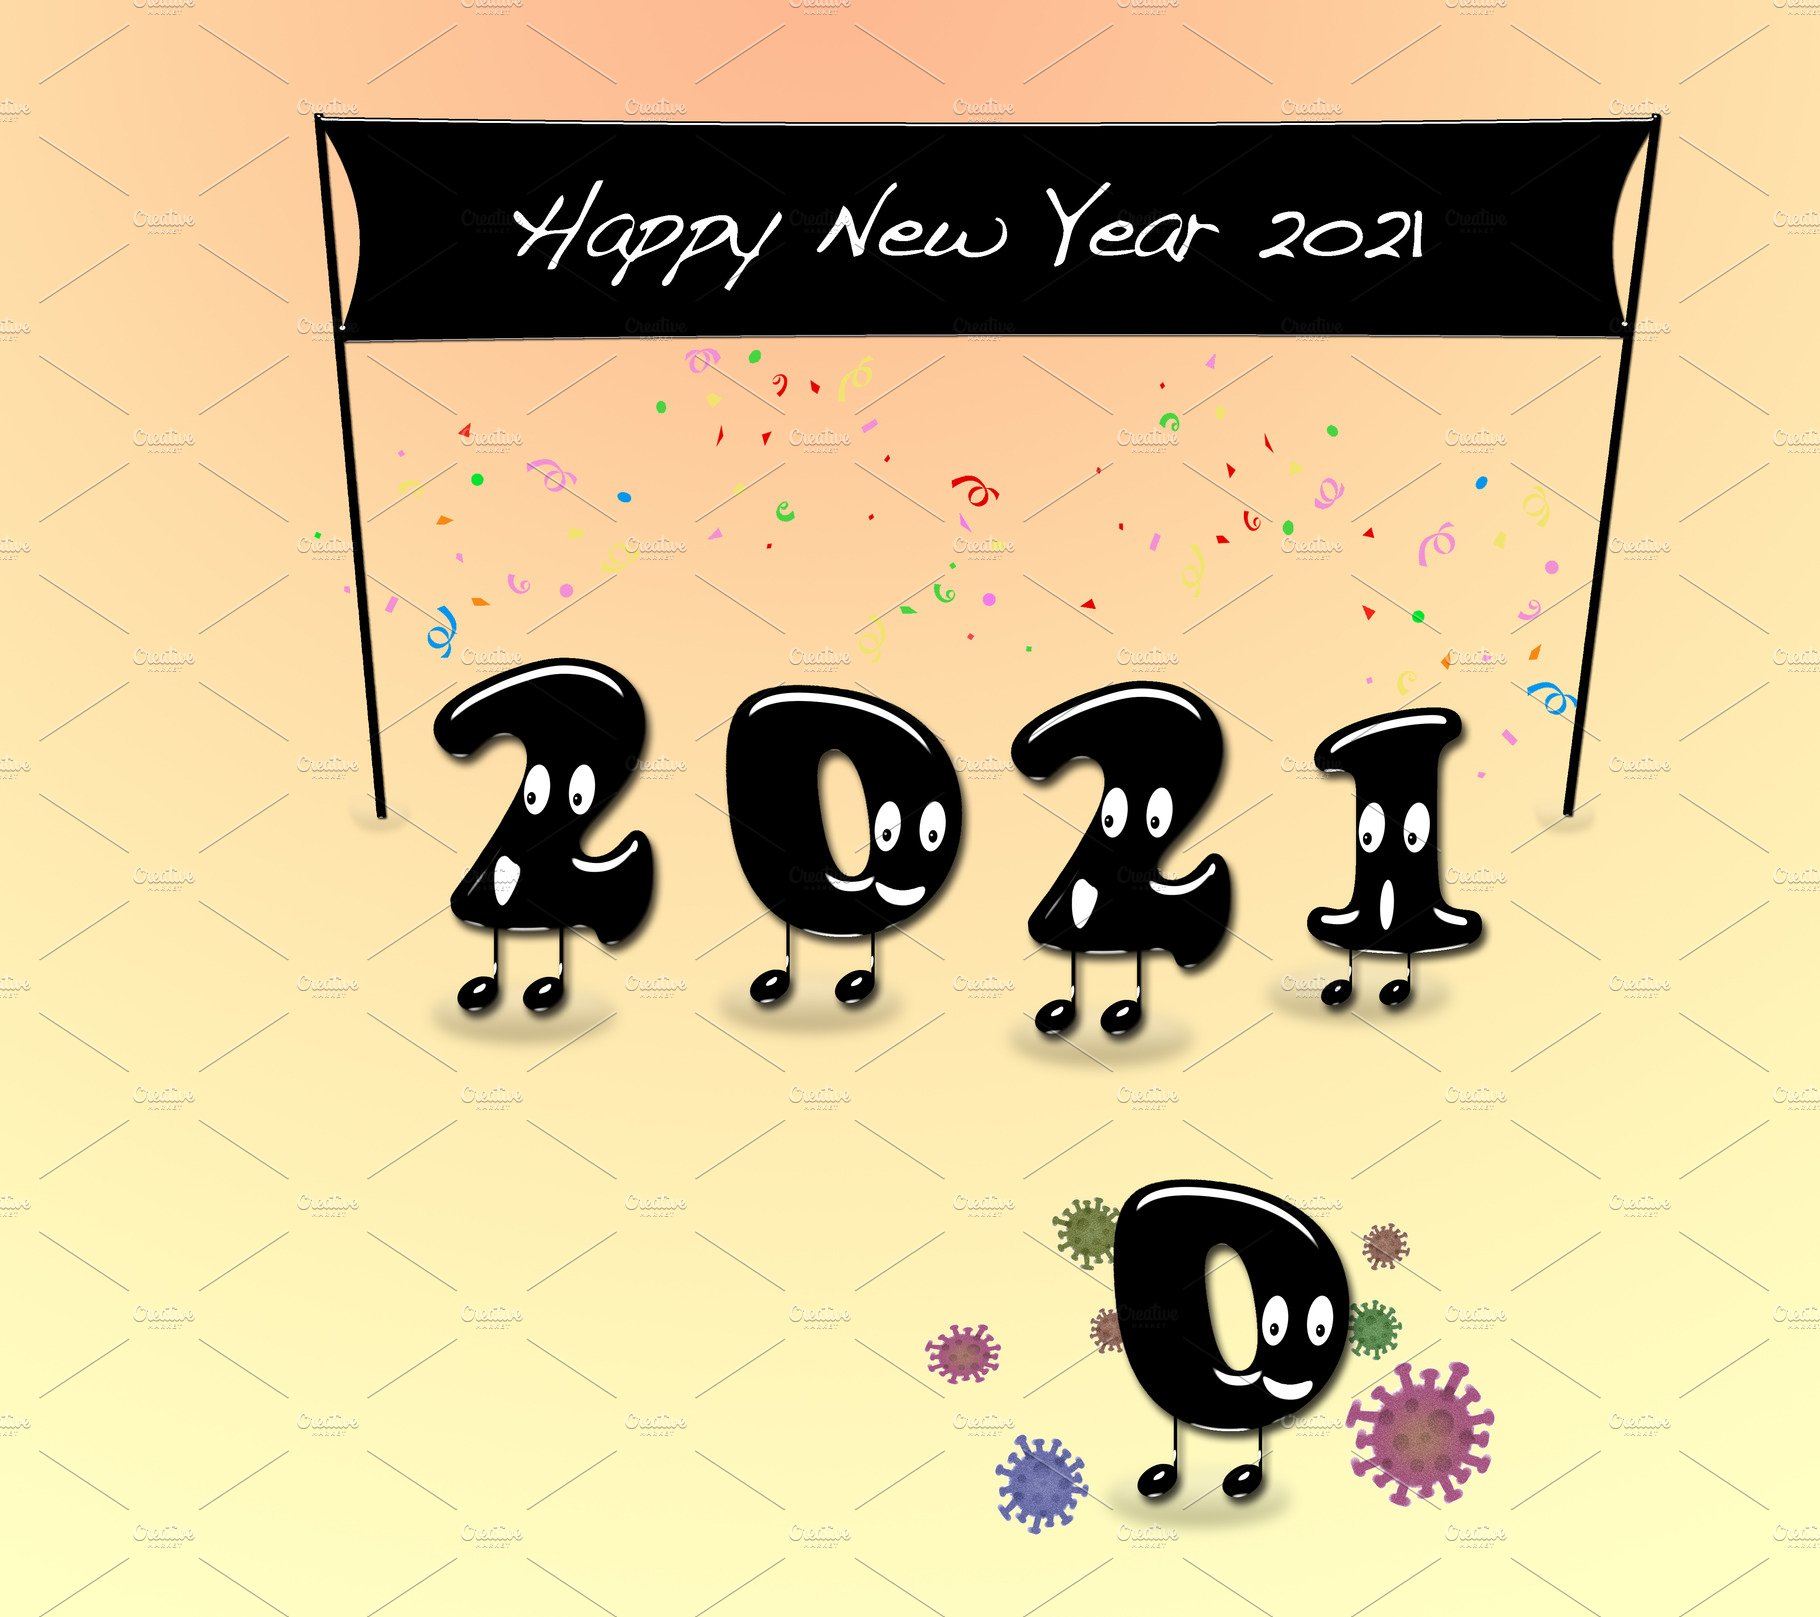 happy new year 2021 without covid19 custom designed illustrations creative market happy new year 2021 without covid19